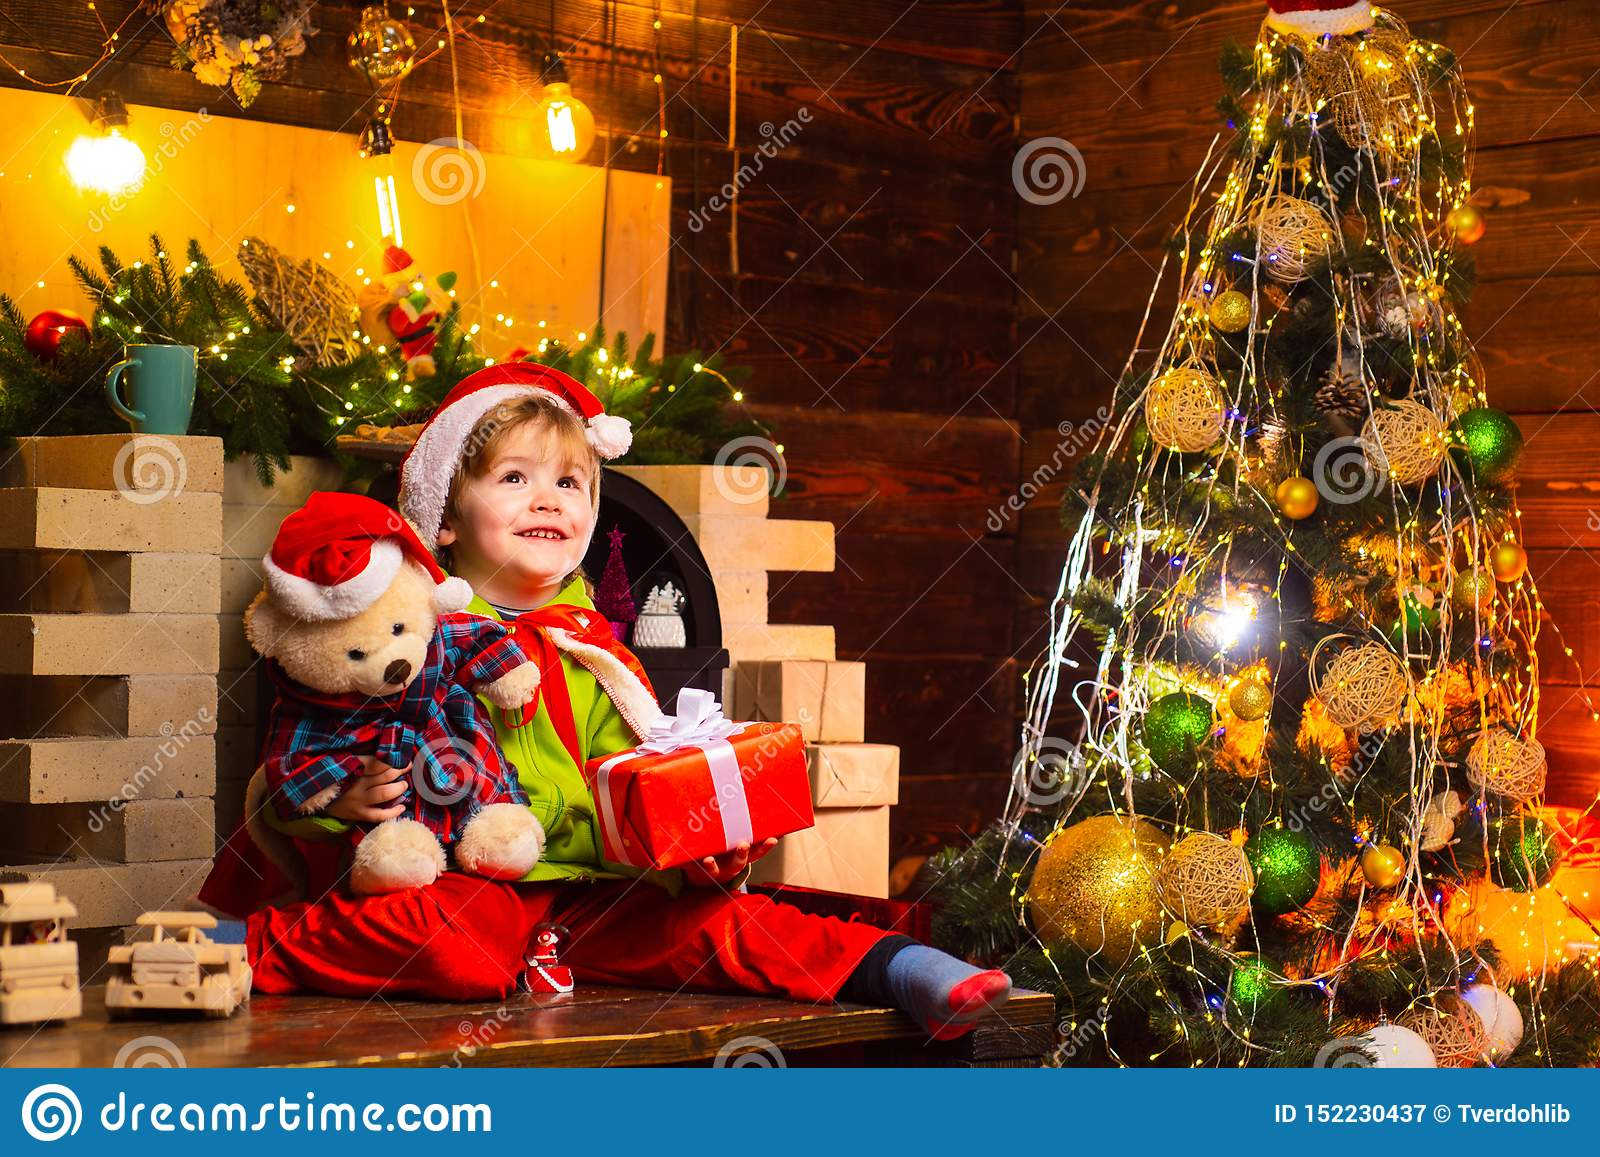 Christmas kids - happiness concept. A young male is playing and laughing. Children joyful emotions. Close-ended and Open